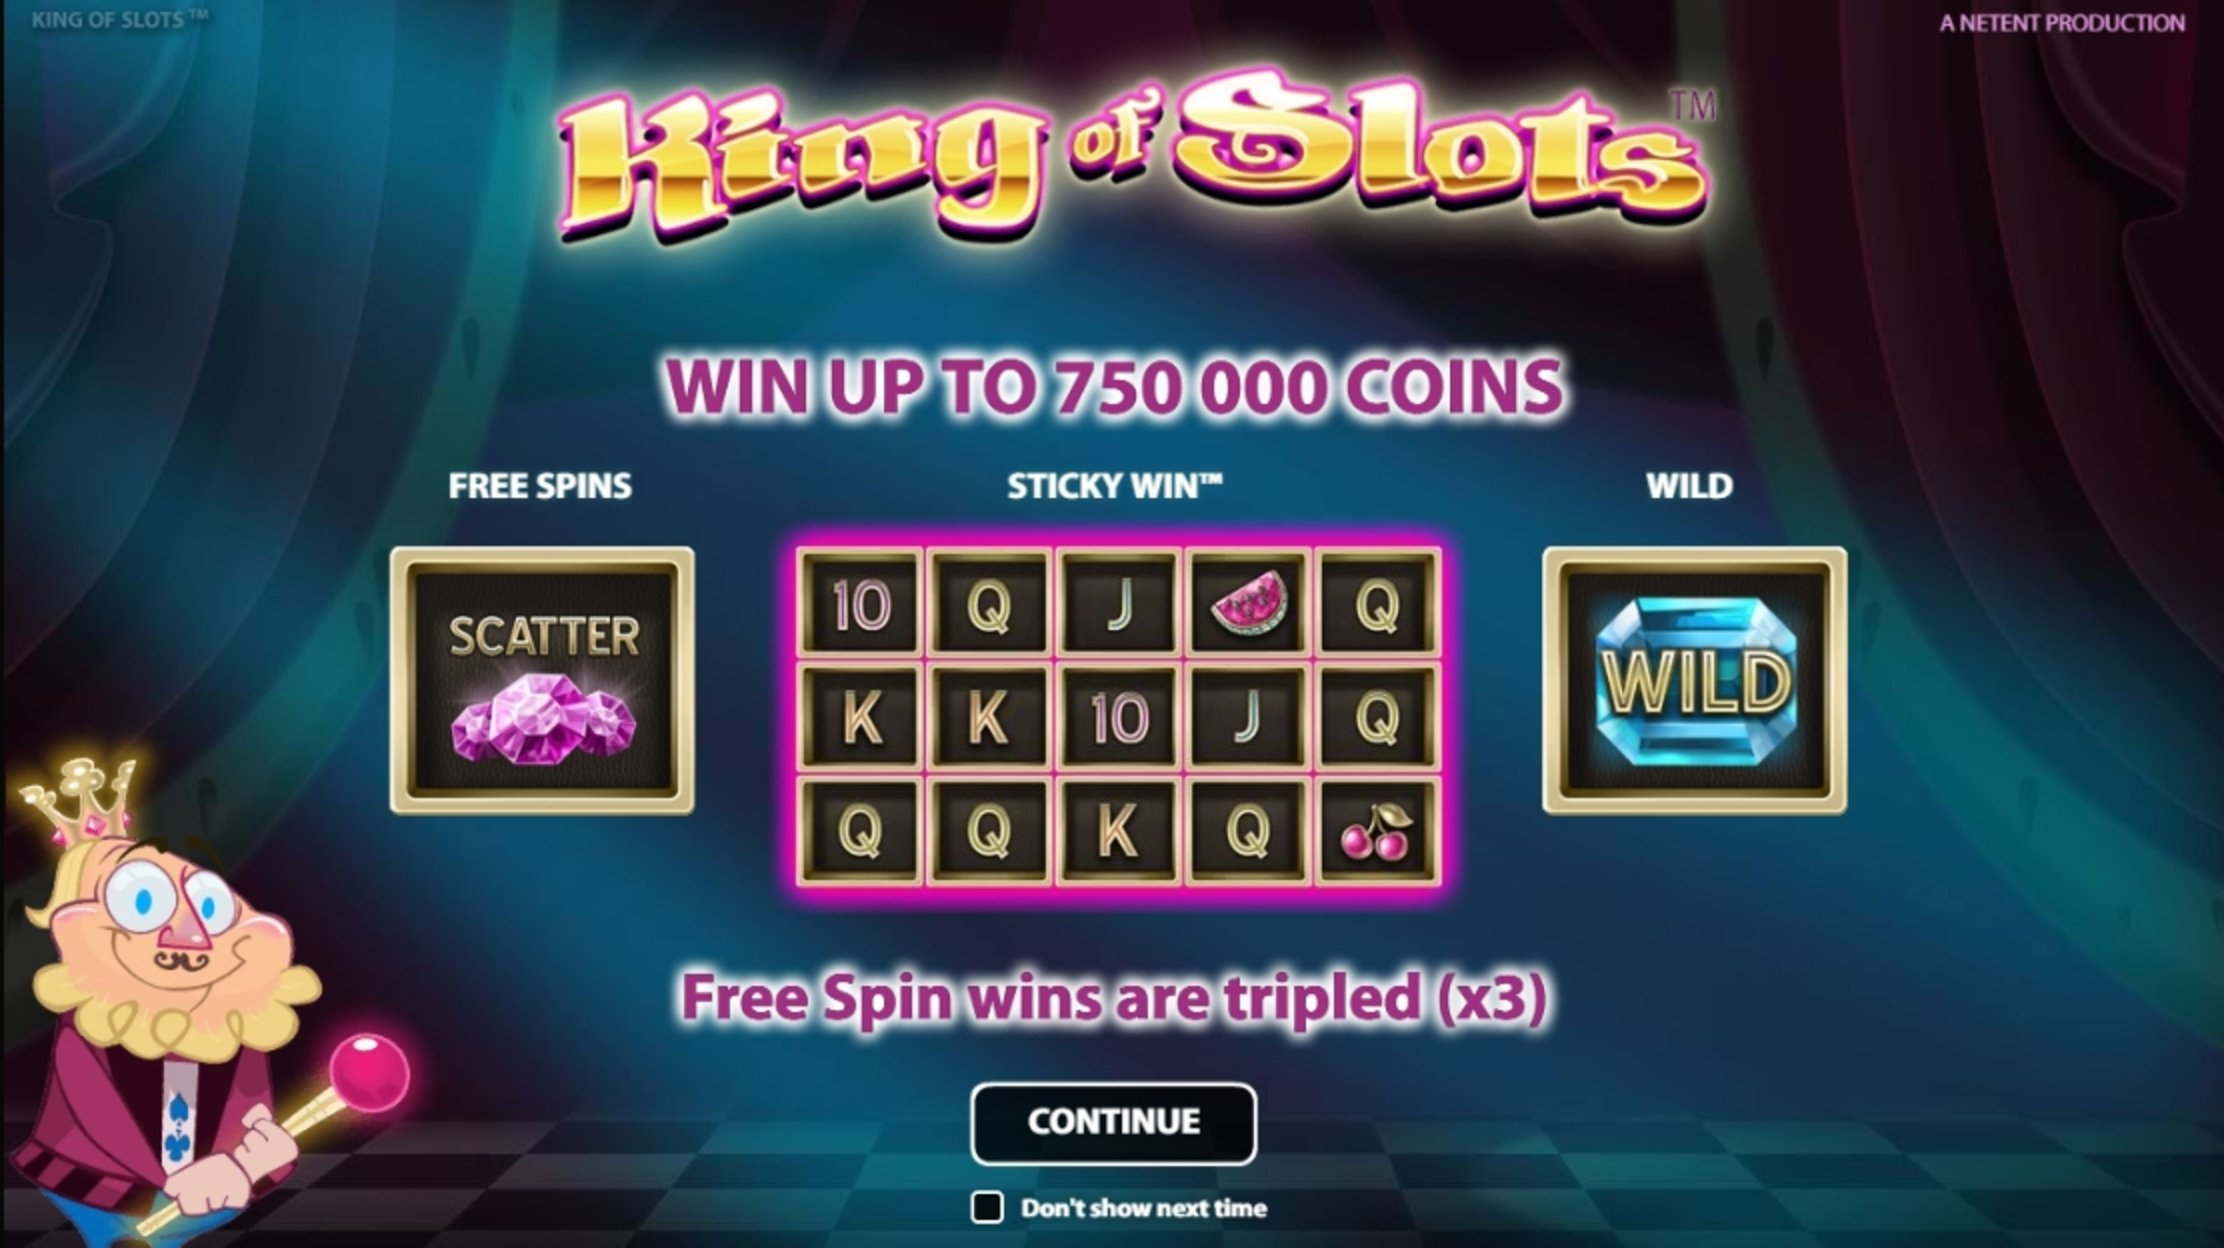 Play King of Slots Free Casino Slot Game by NetEnt